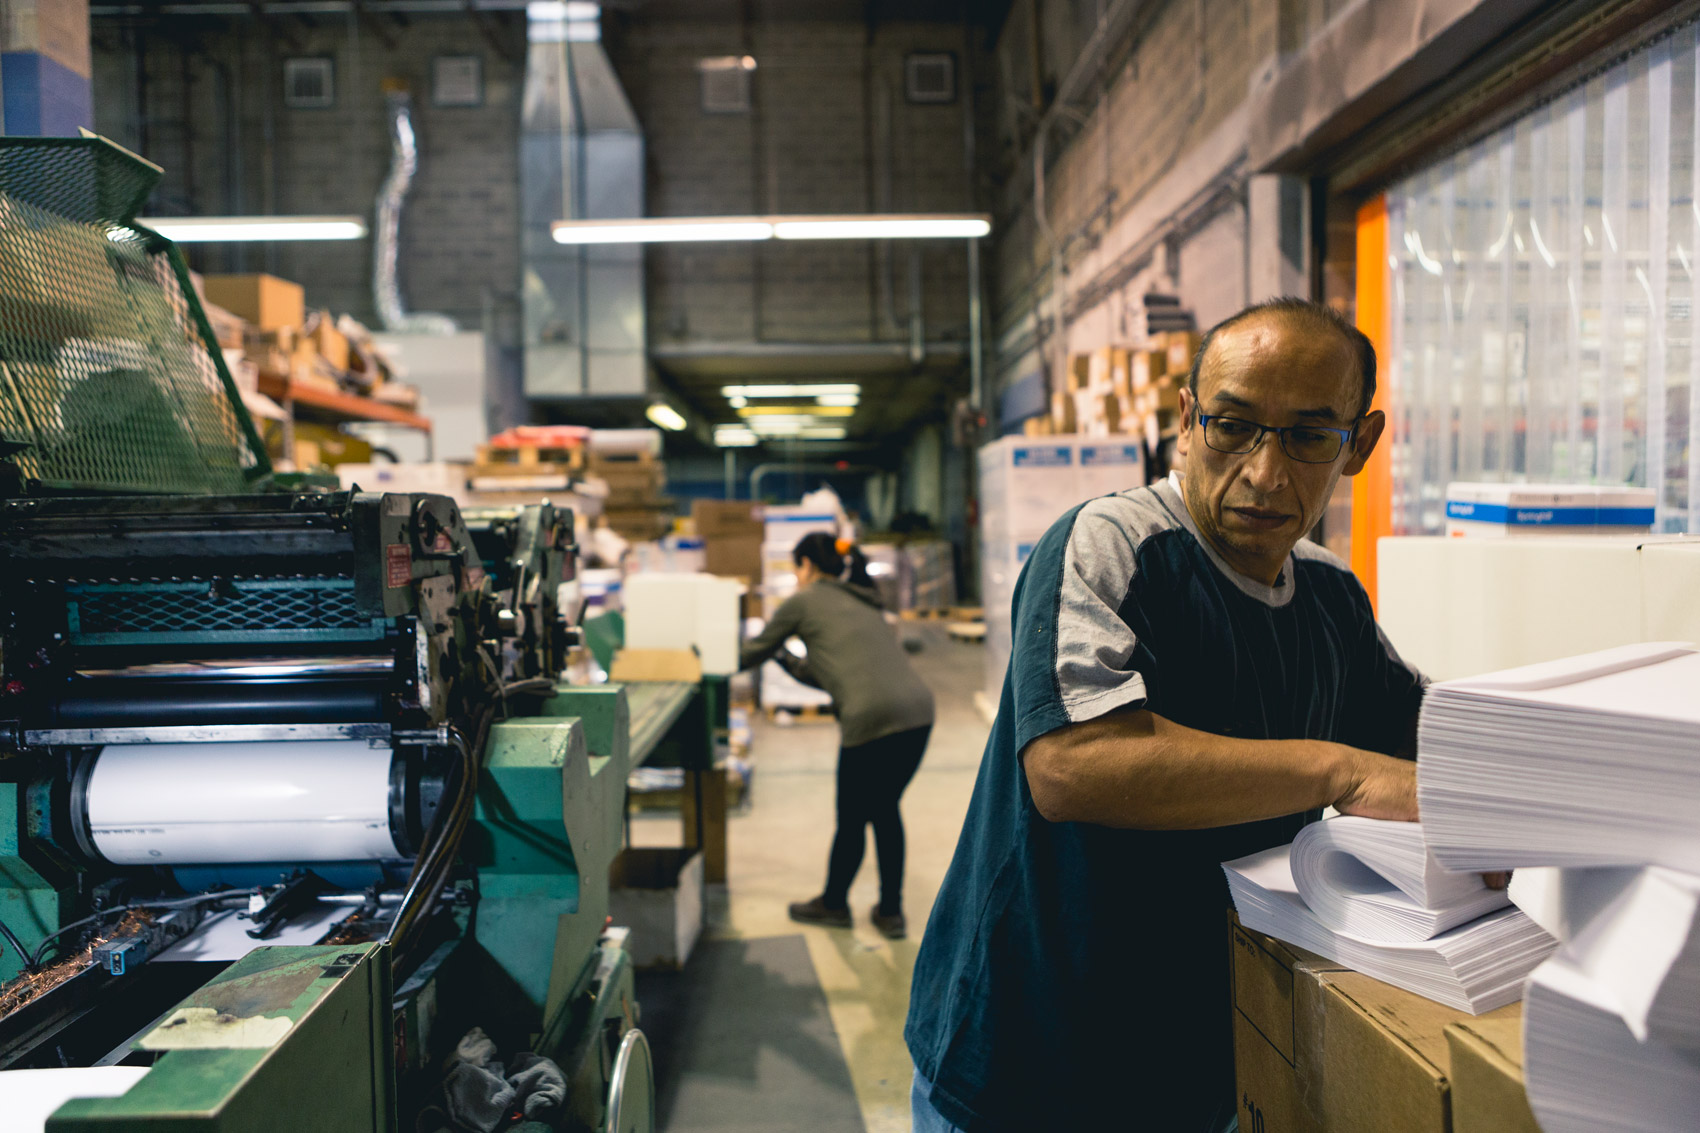 working gathering envelopes at printing press for washington dc industrial photography